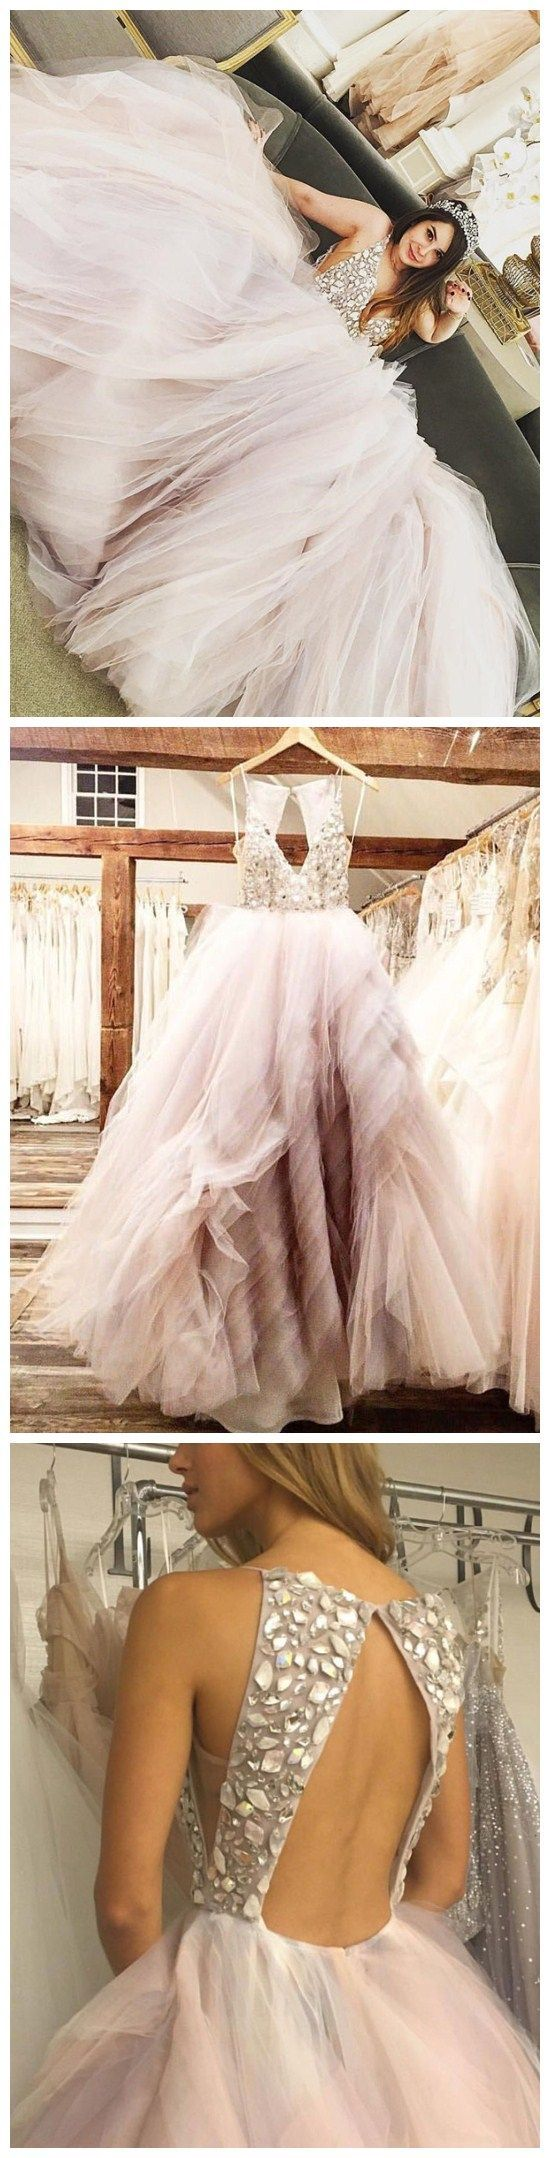 Wedding dresses with rhinestones  Shining Tulle Spaghetti Straps Neckline Ball Gown Wedding Dresses